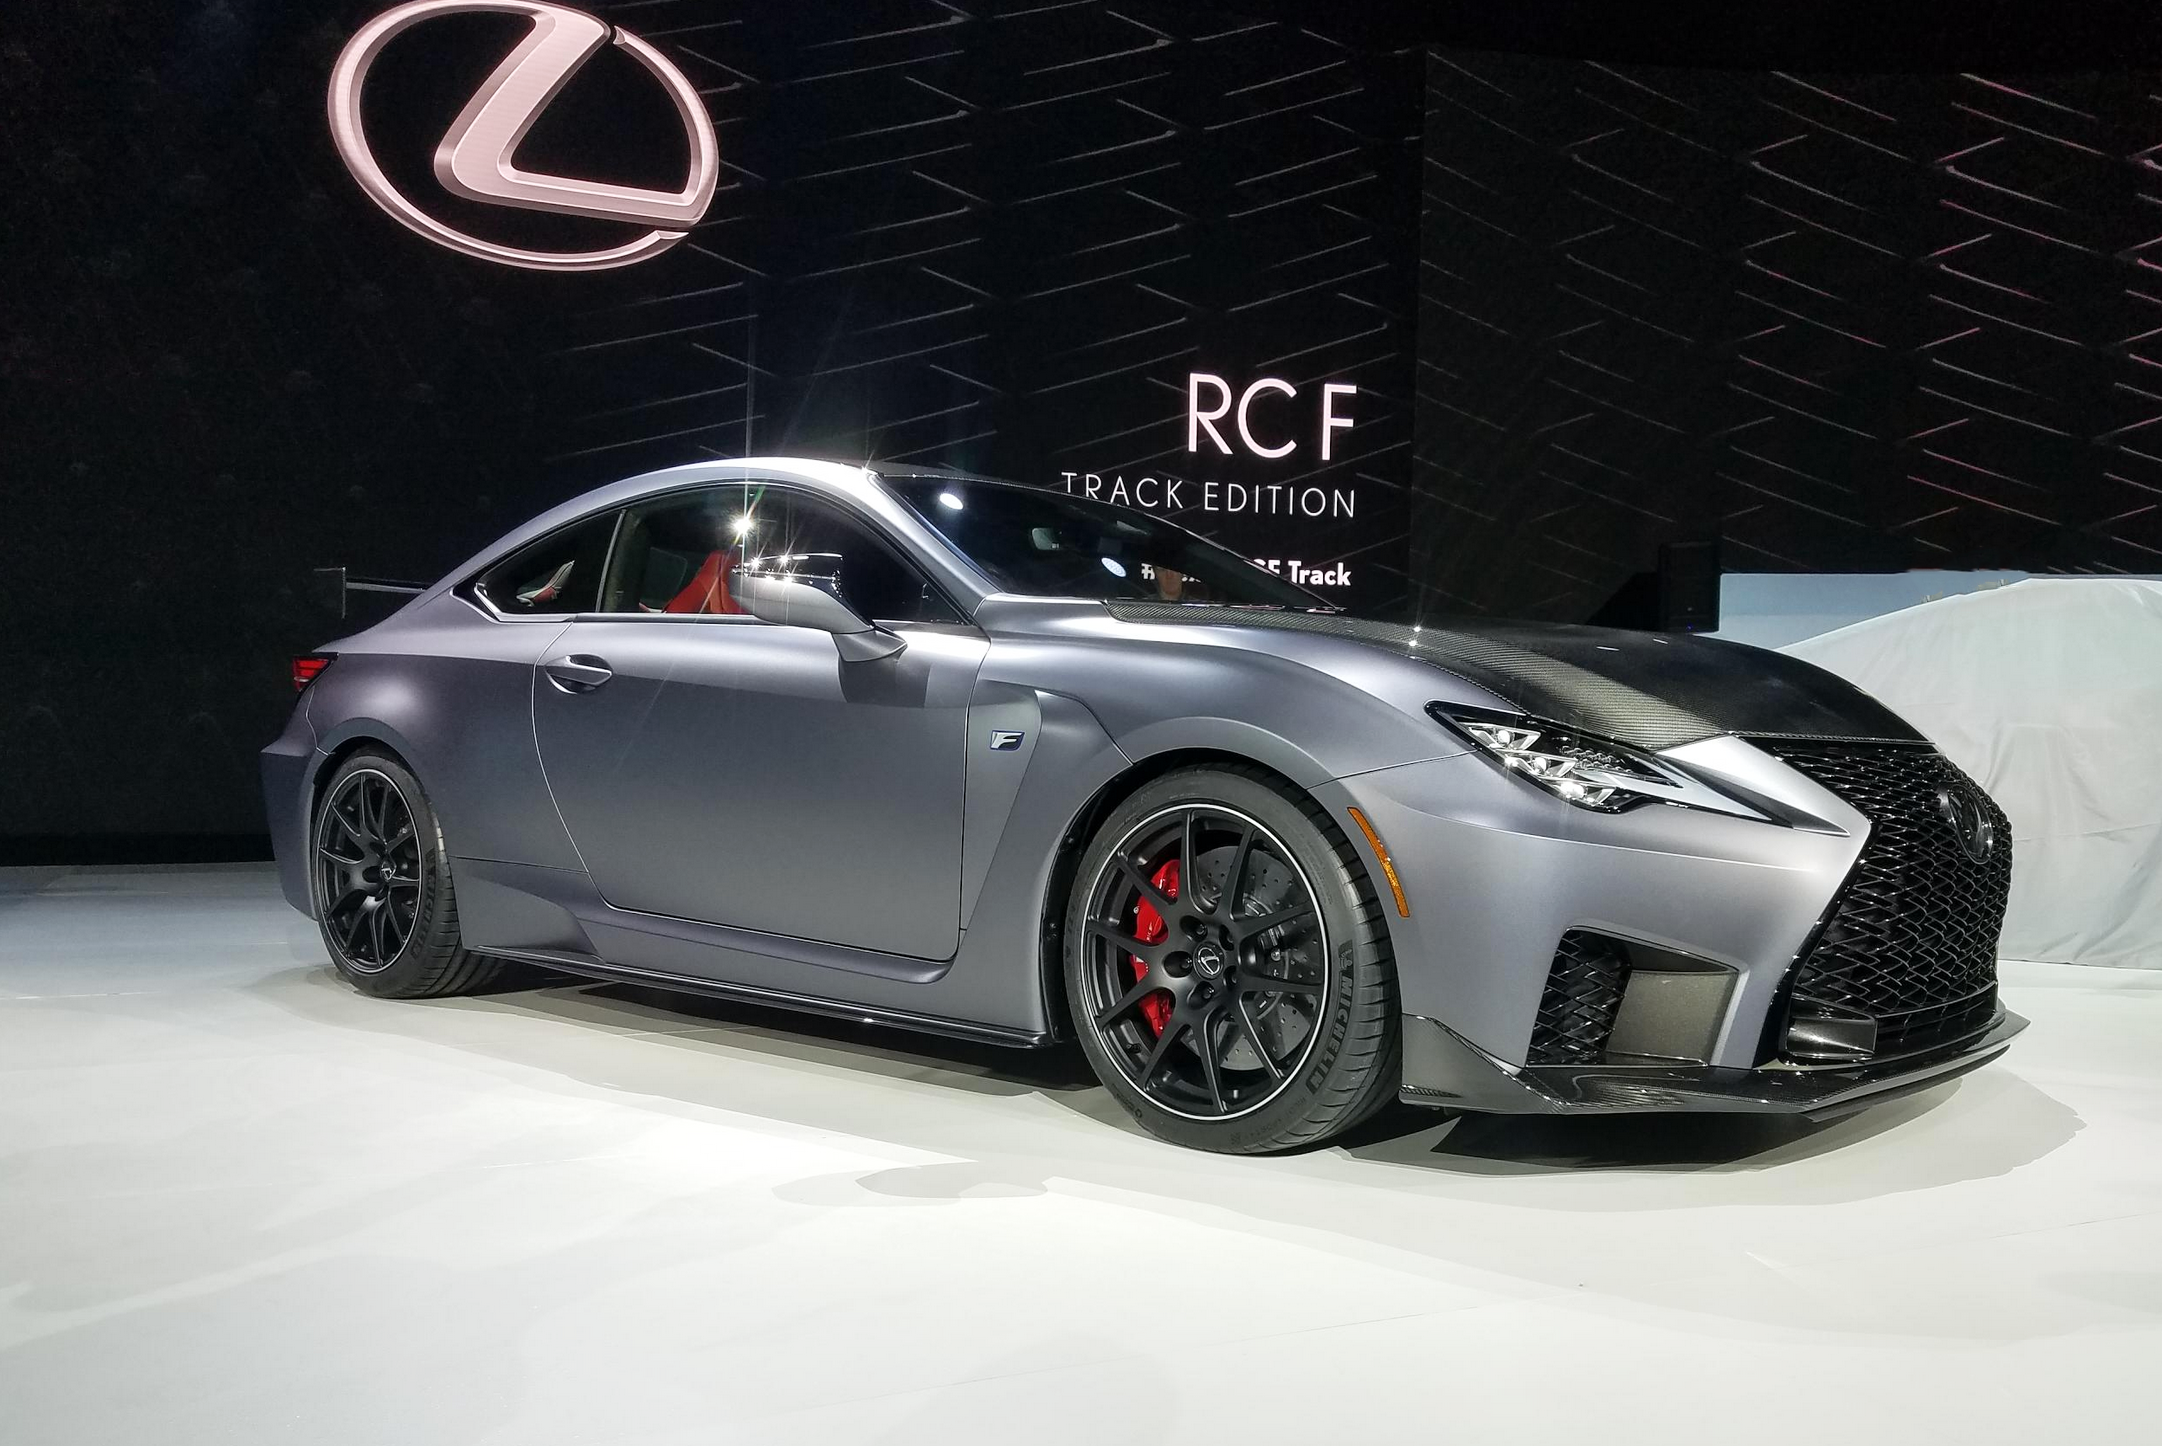 Led Lights For Cars >> 2019 Detroit Auto Show: 2020 Lexus RC F and RC F Track ...